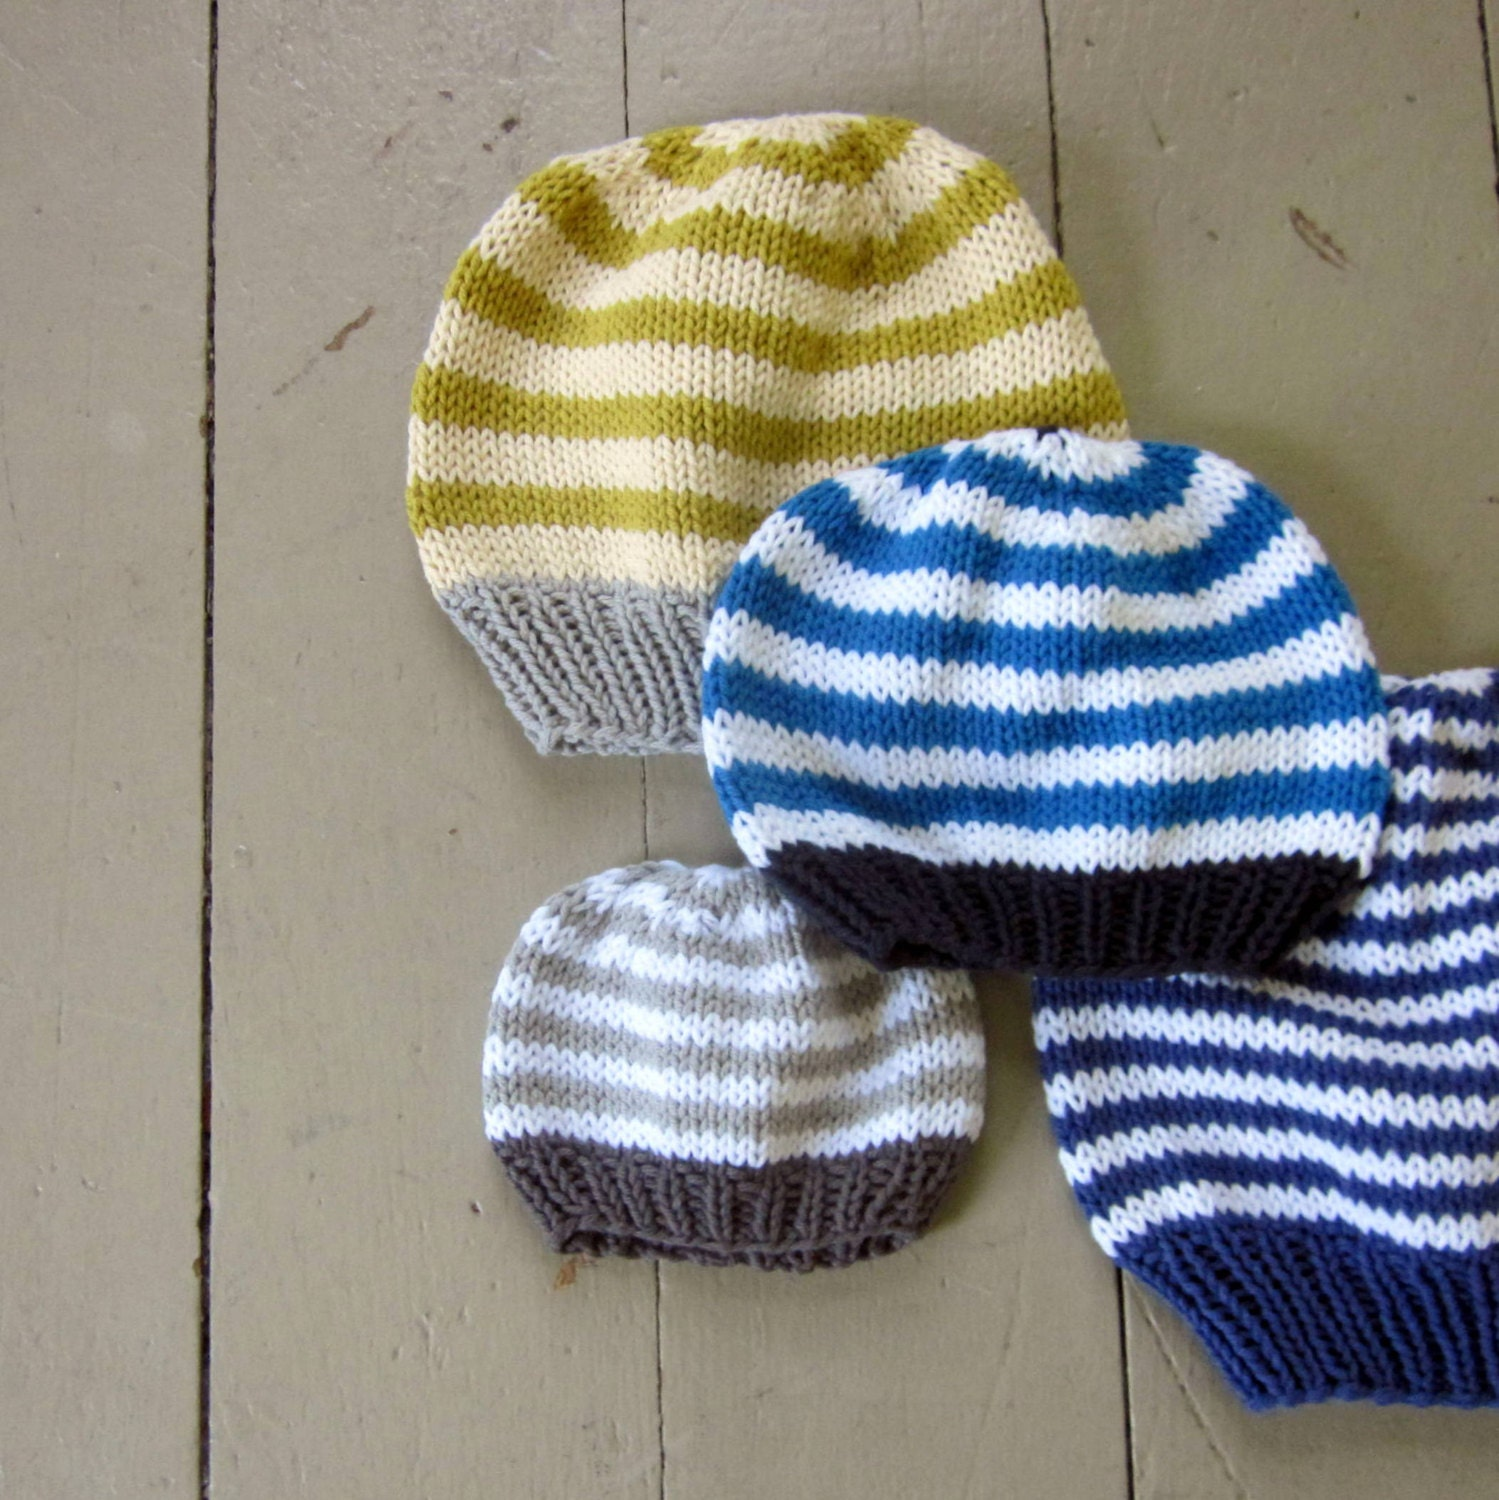 Knit Baby Hats Pattern : Pattern, basic hat knitting pattern, PDF knitted hat pattern: newborn, baby, ...